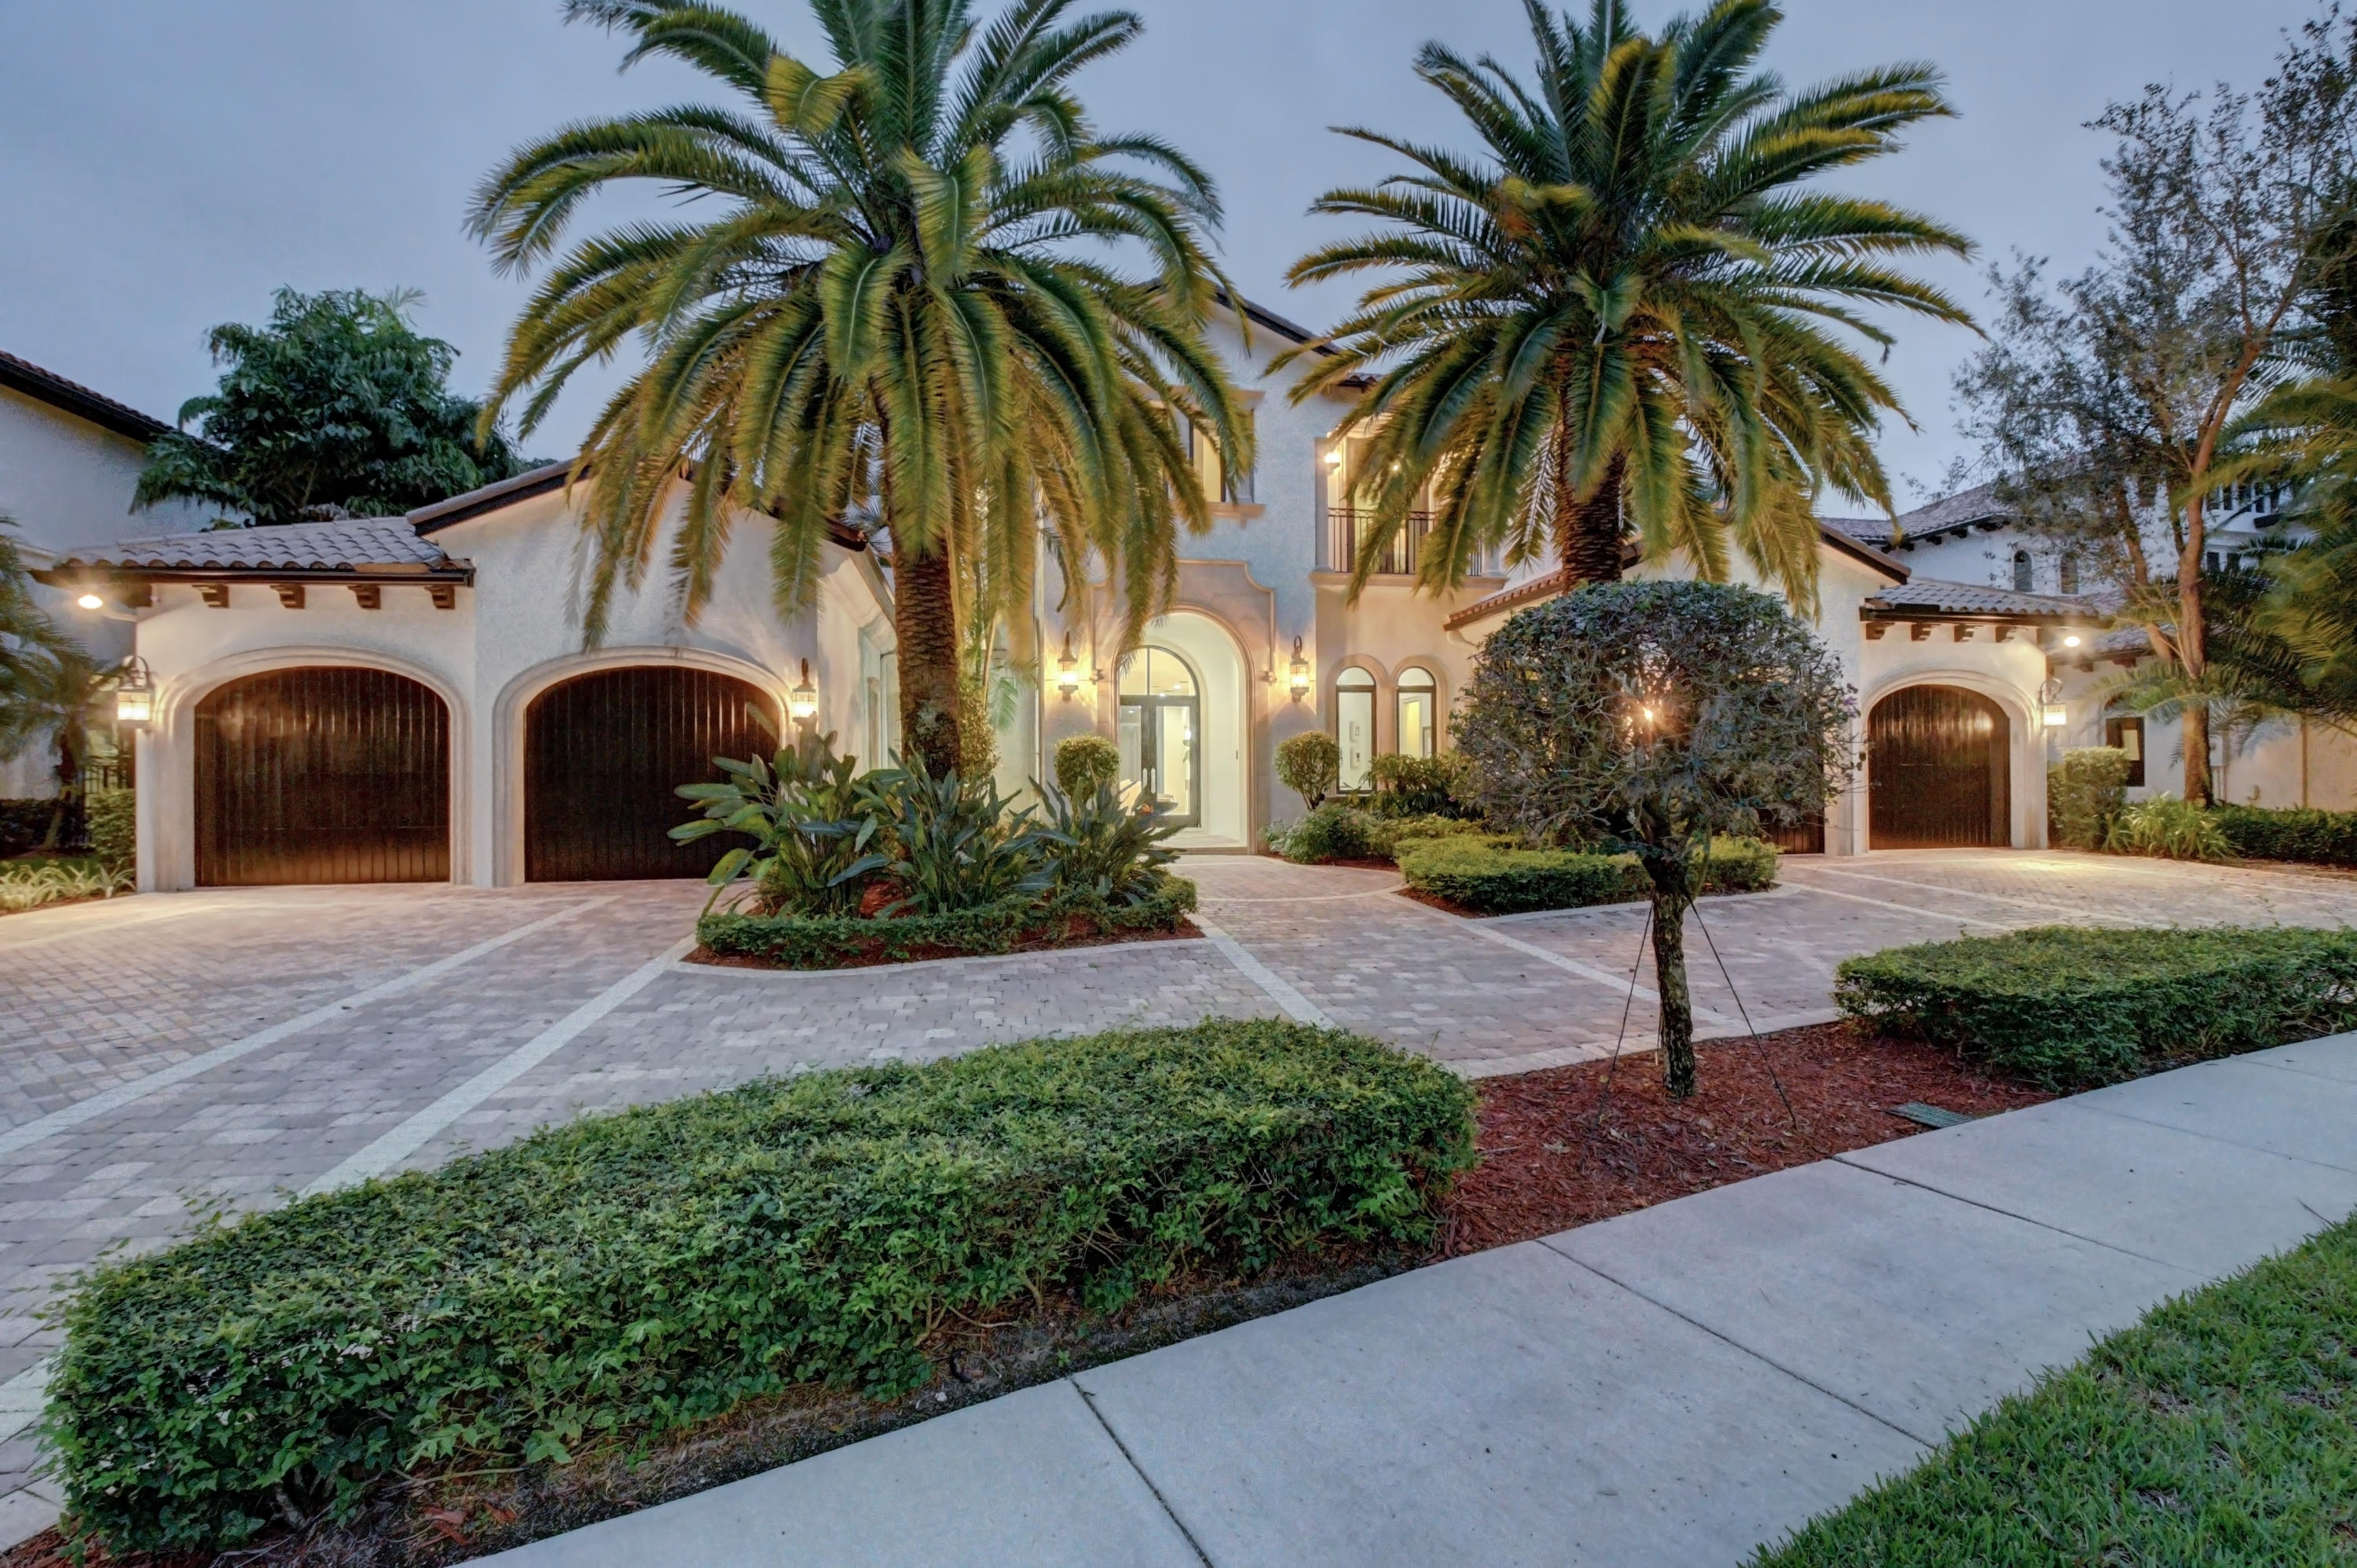 Photo of 17606 Grand Este Way, Boca Raton, FL 33496